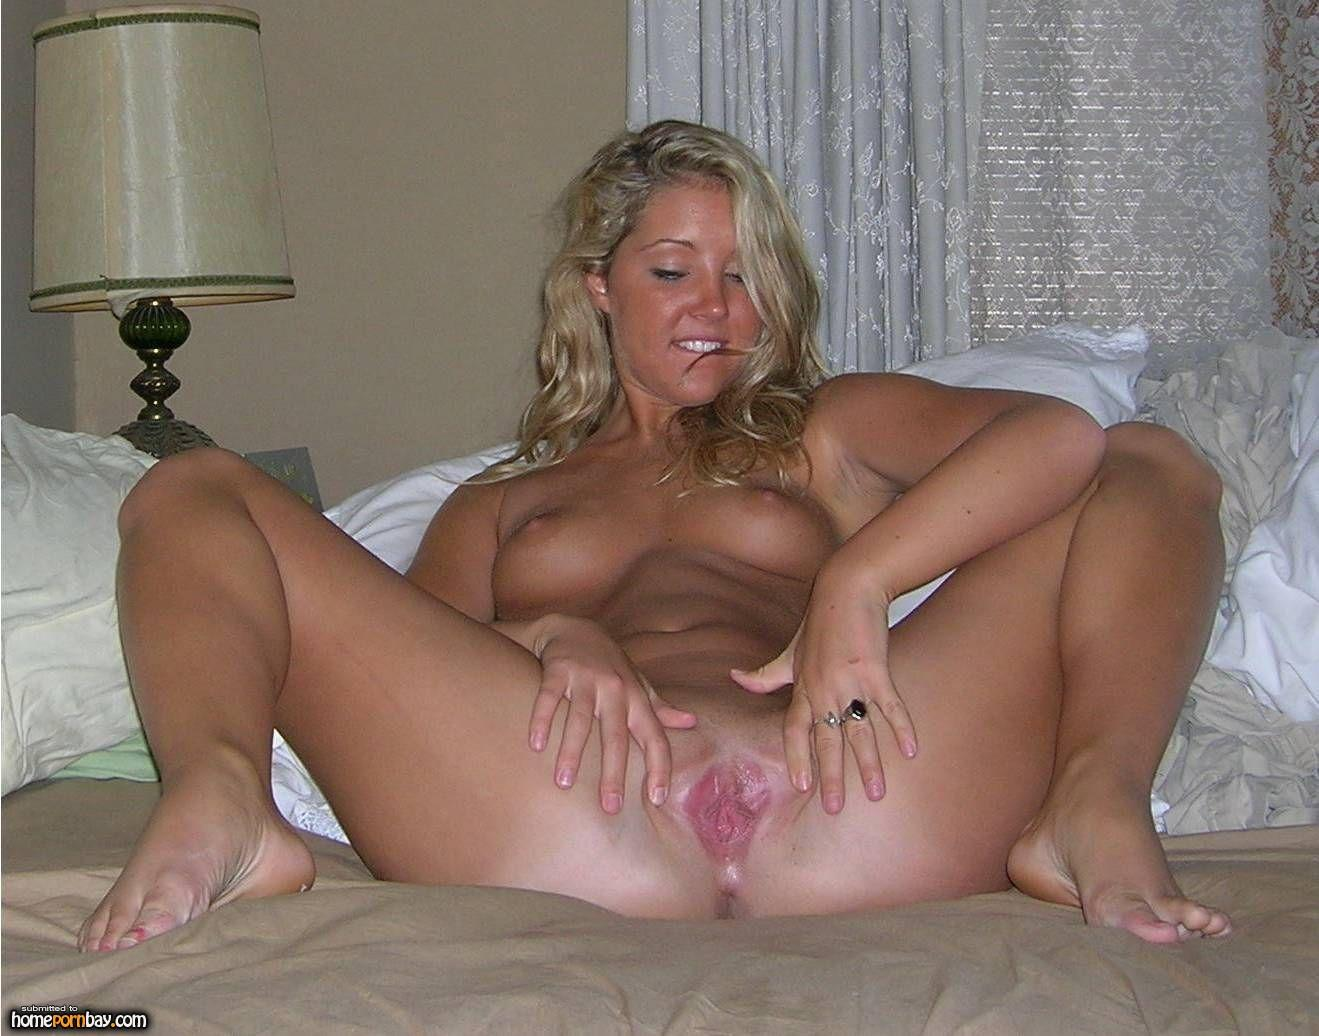 Spread eagle girl naked